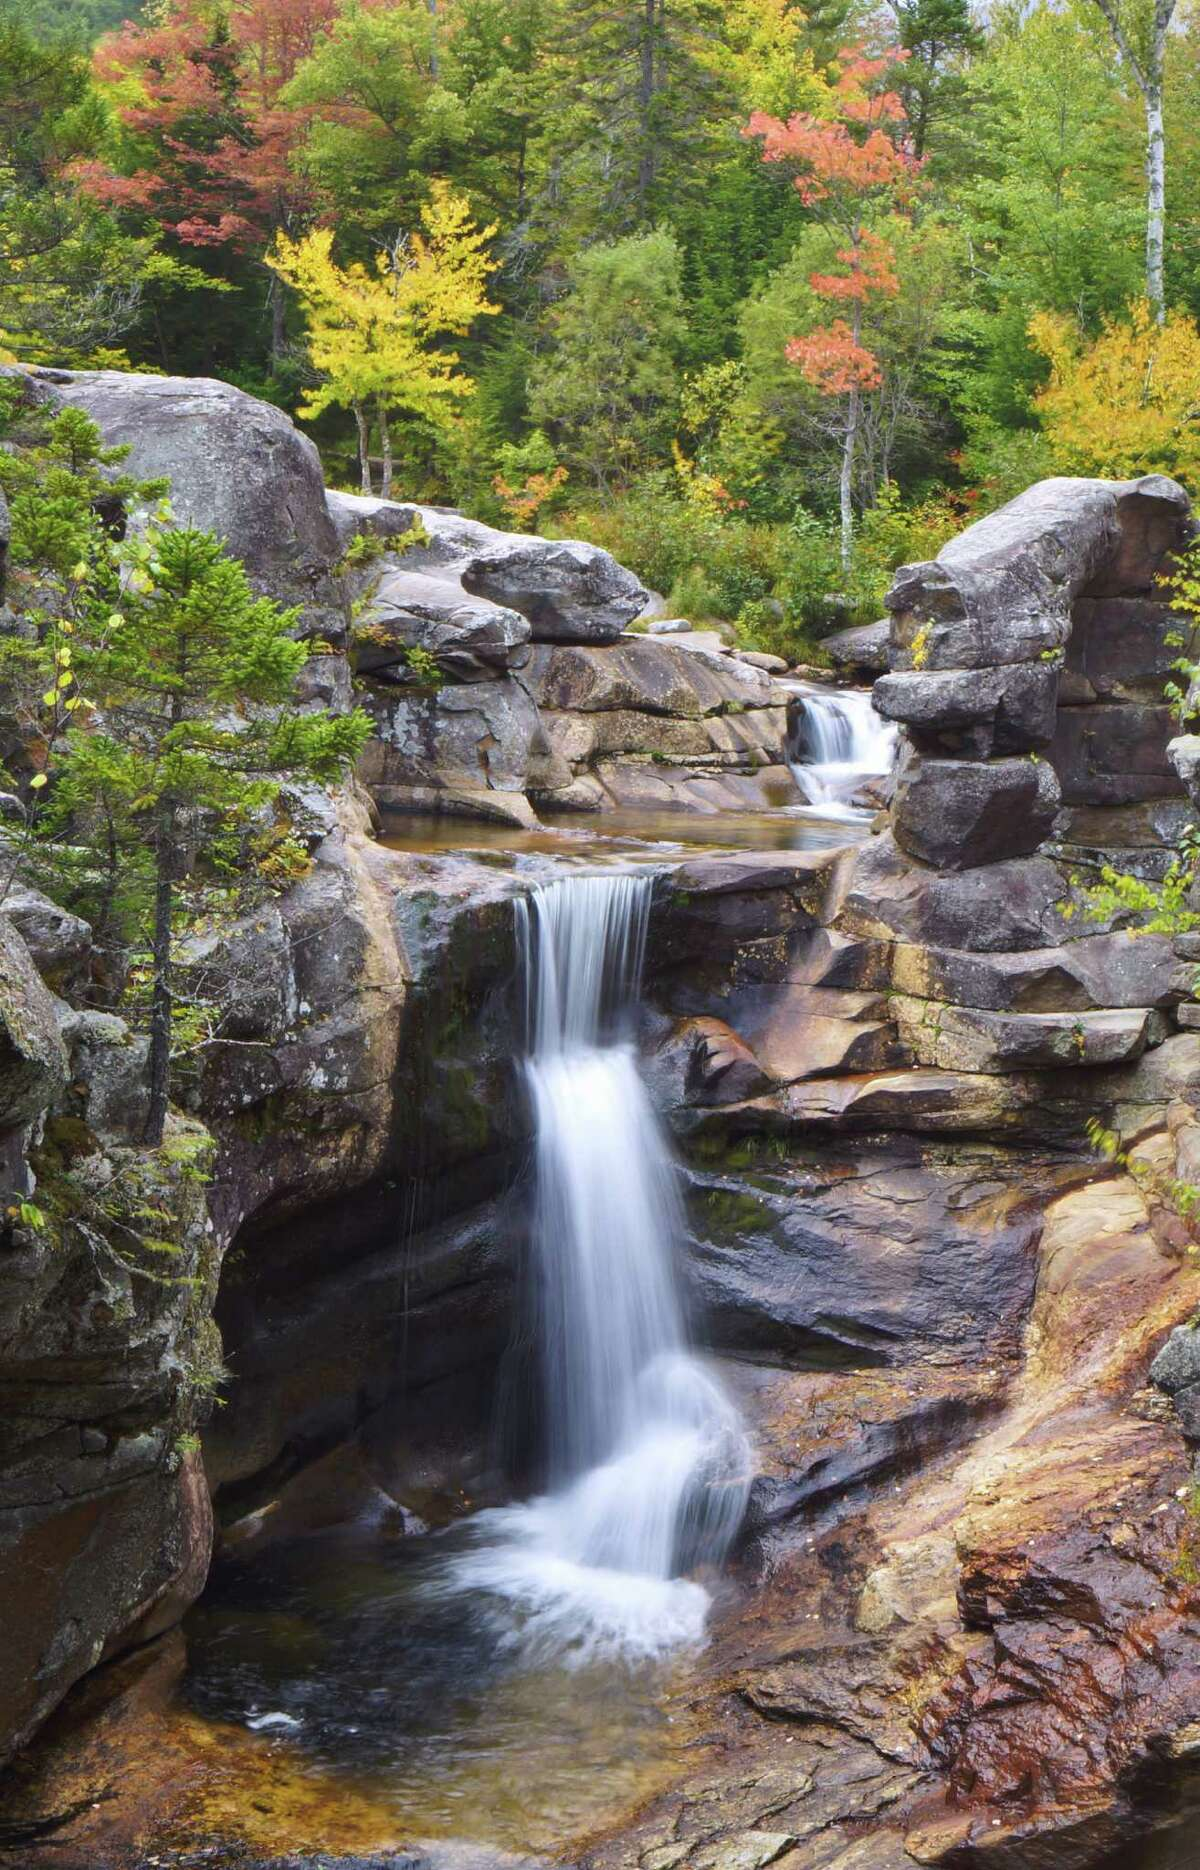 Fall colors have begun appearing near Screw Auger Falls in Grafton Notch State Park in Bethel, Maine.